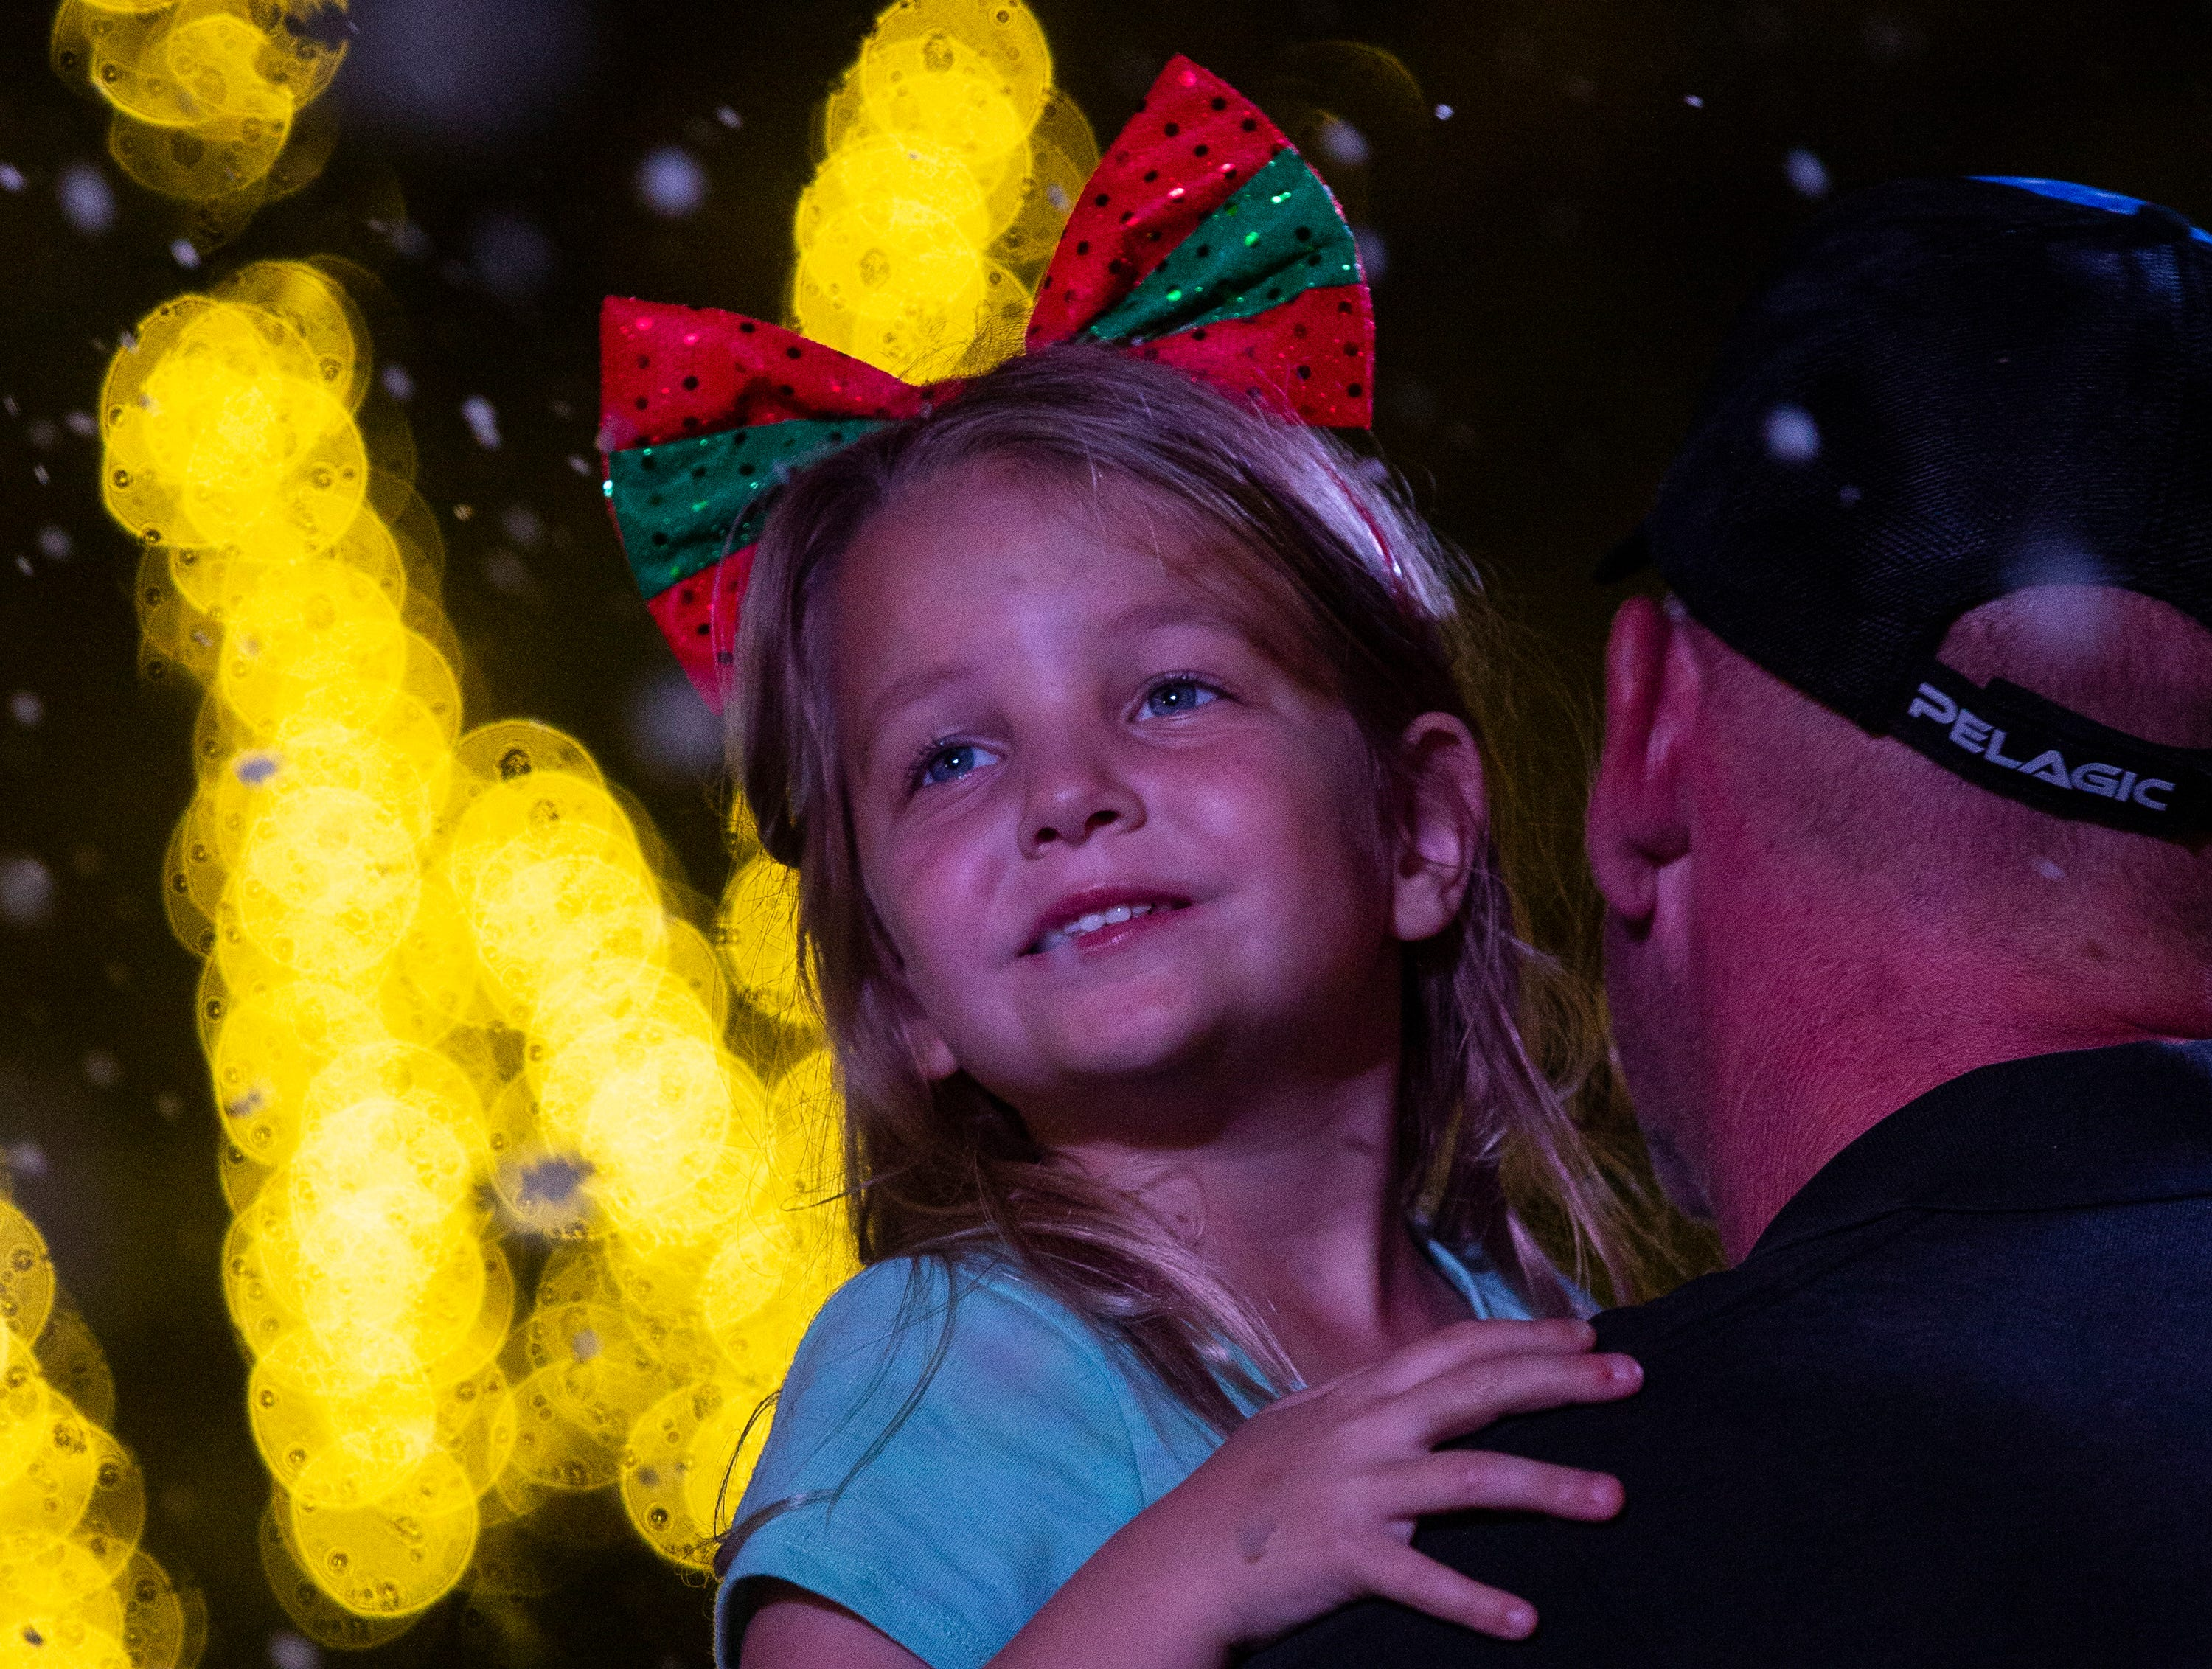 Four-year-old, Addison Goins, smiles as she watches the faux snow fill the air at  the 19th annual Holiday in the Park Christmas event on Dec. 4, 2018 at the Riverside Park in Bonita Springs.